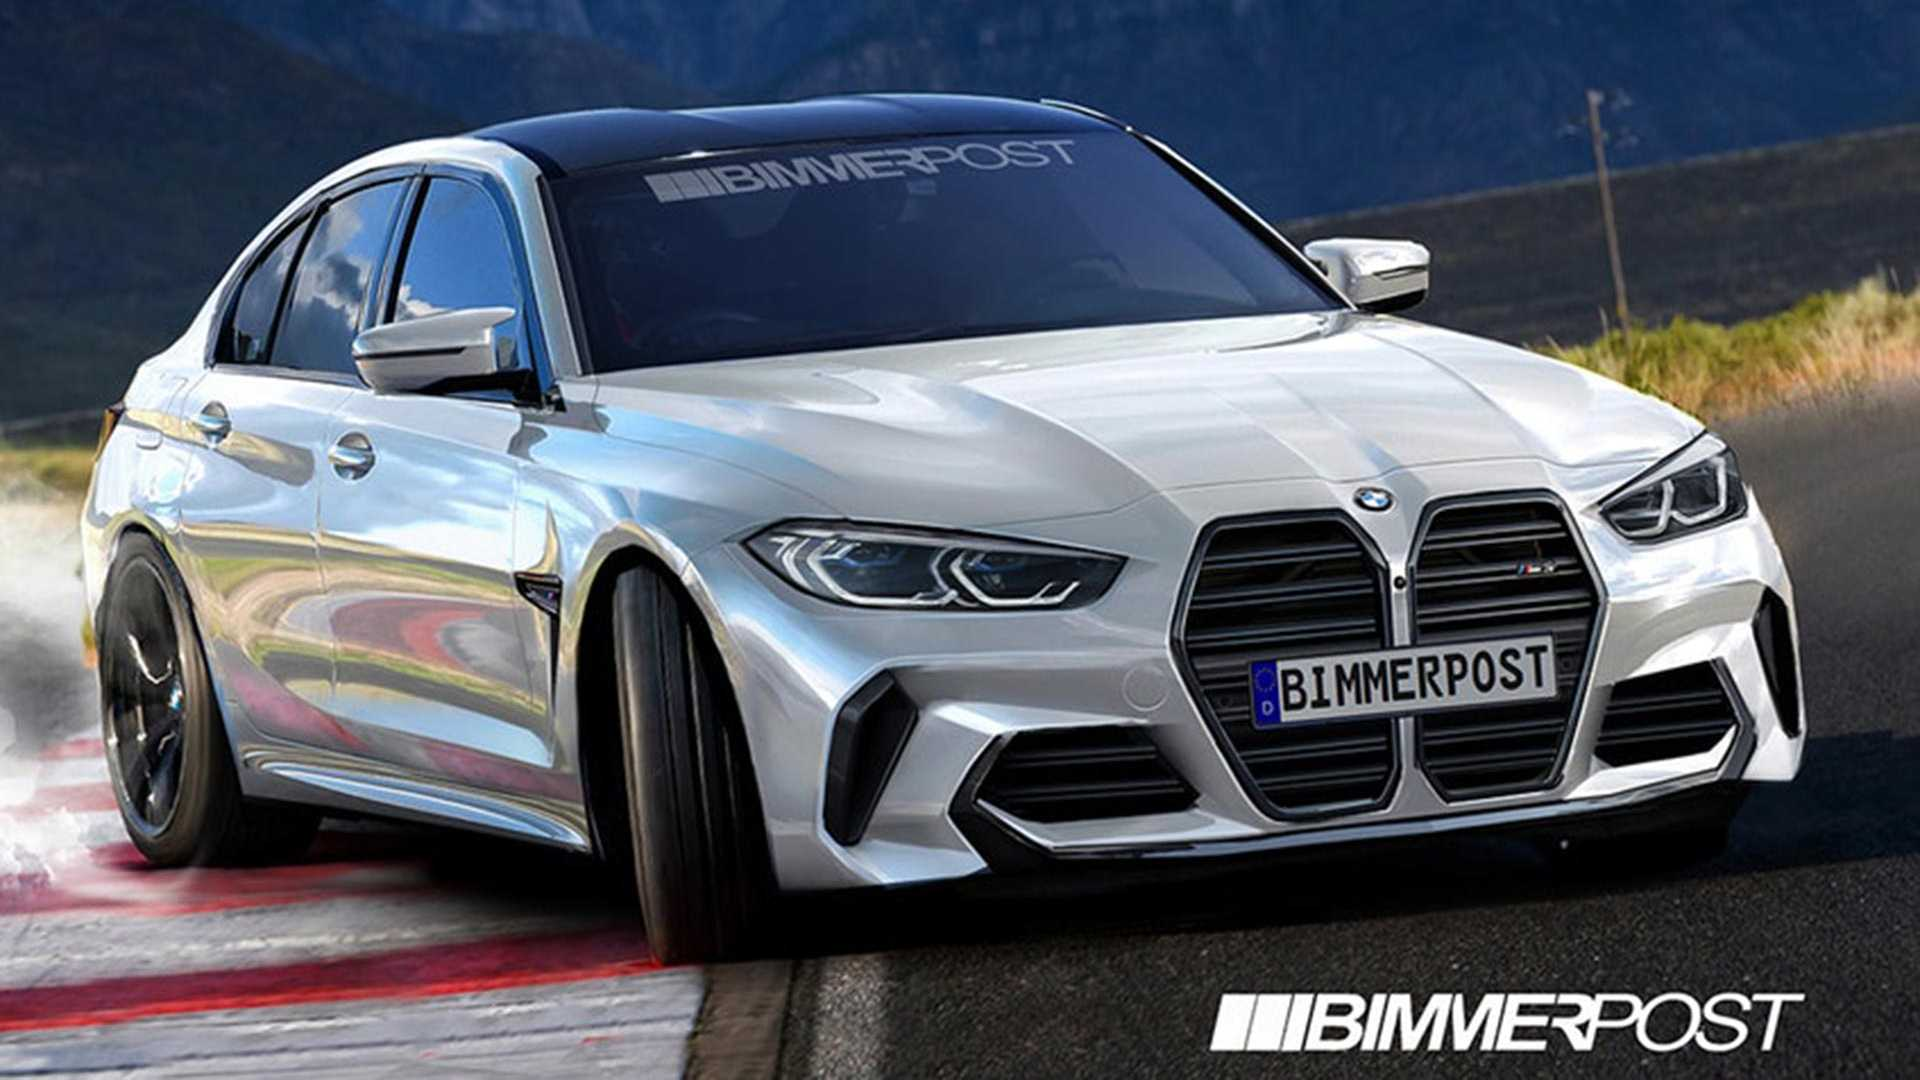 BMW New Car >> Bmw M3 Rendering Imagines Wild Looking Style For New Model